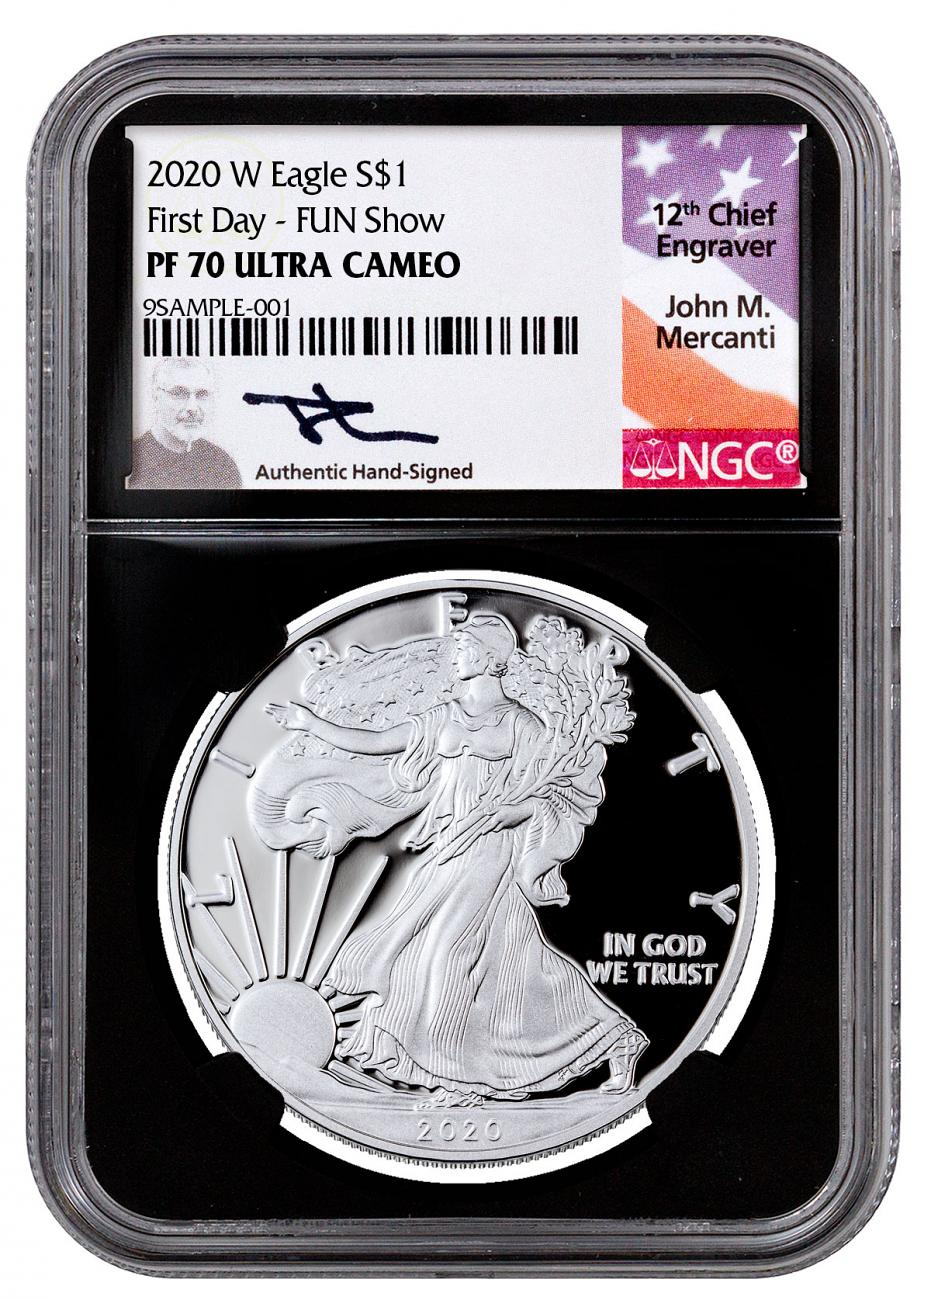 2020-W 1 oz Proof Silver American Eagle $1 Coin NGC PF70 UC First Day - Fun Show Black Core Holder Exclusive Mercanti Signed Label